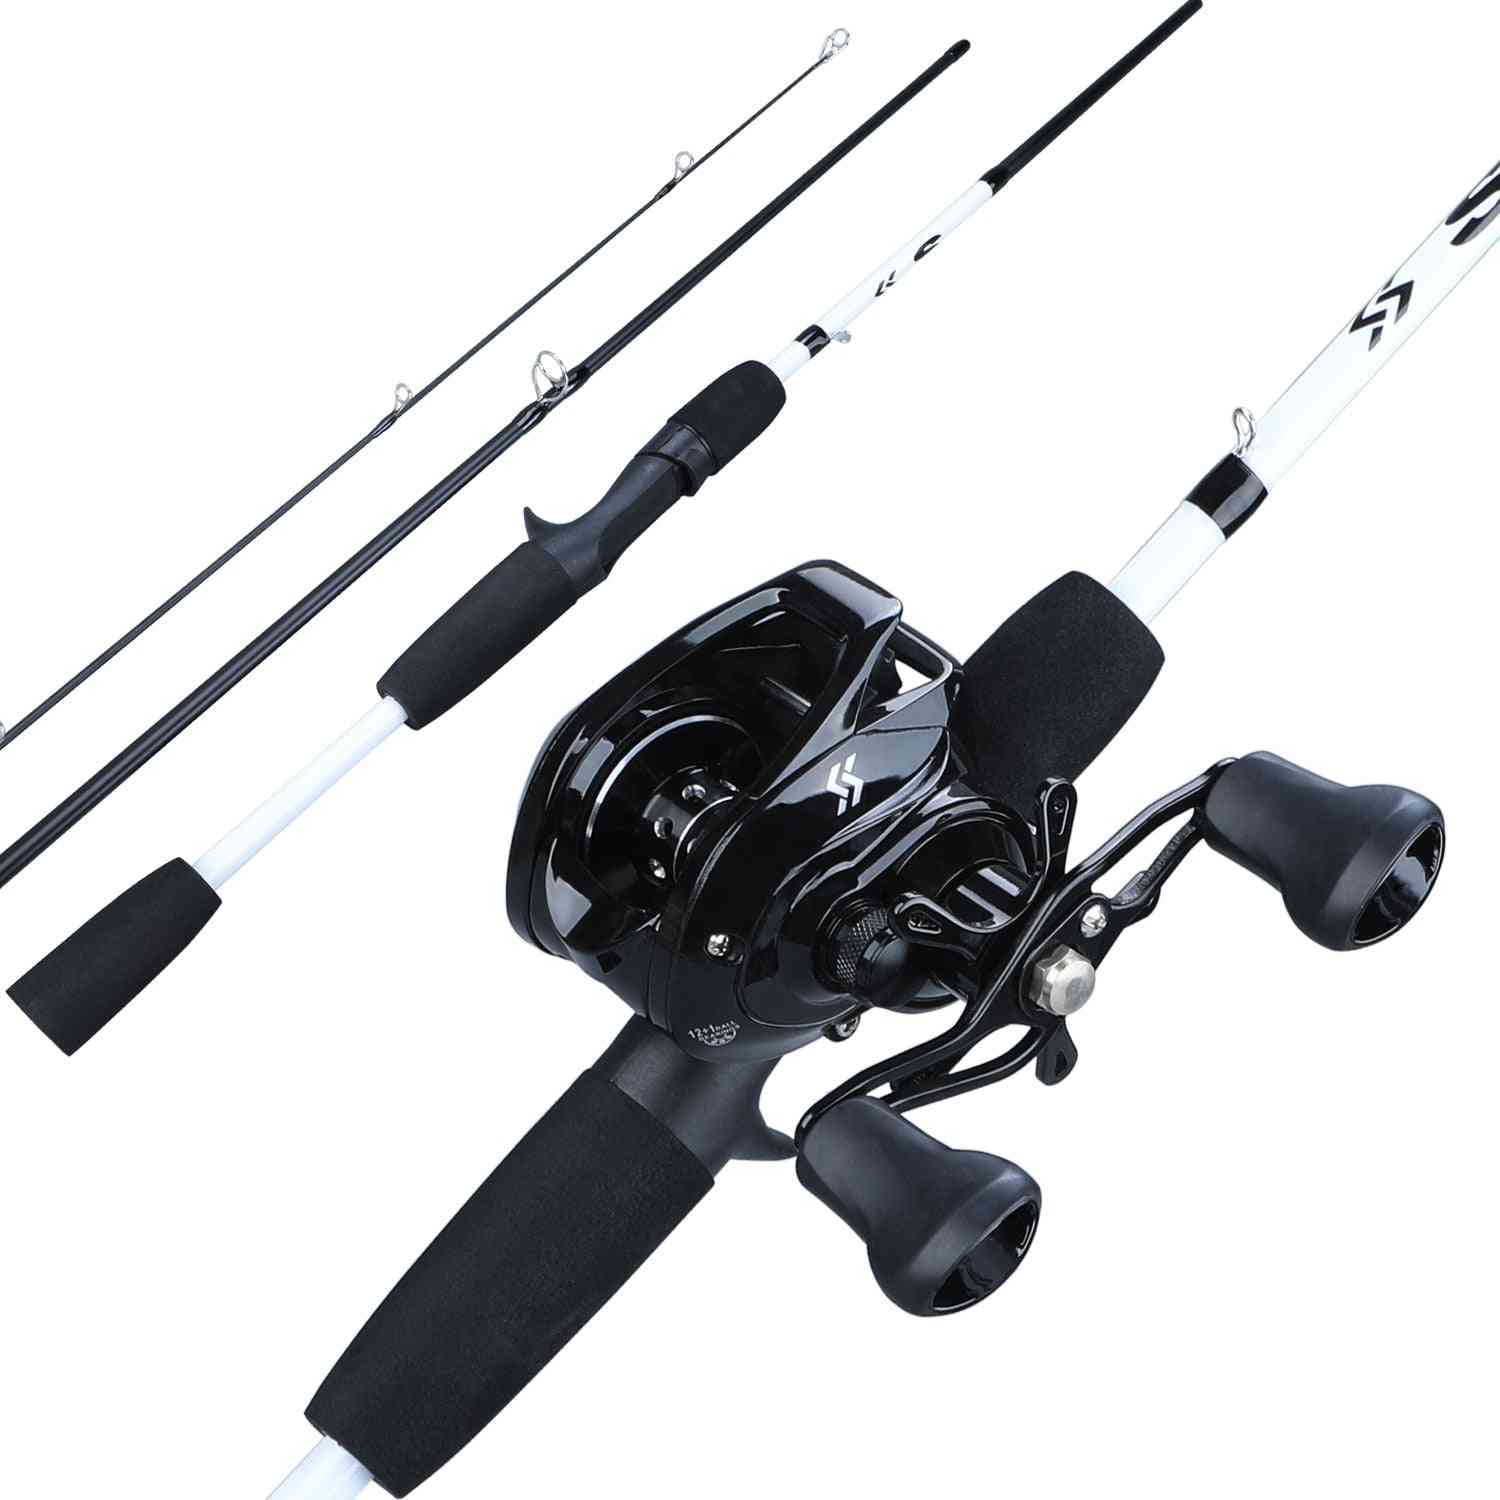 Portable 3-section, Combo Carbon, Fishing Rod